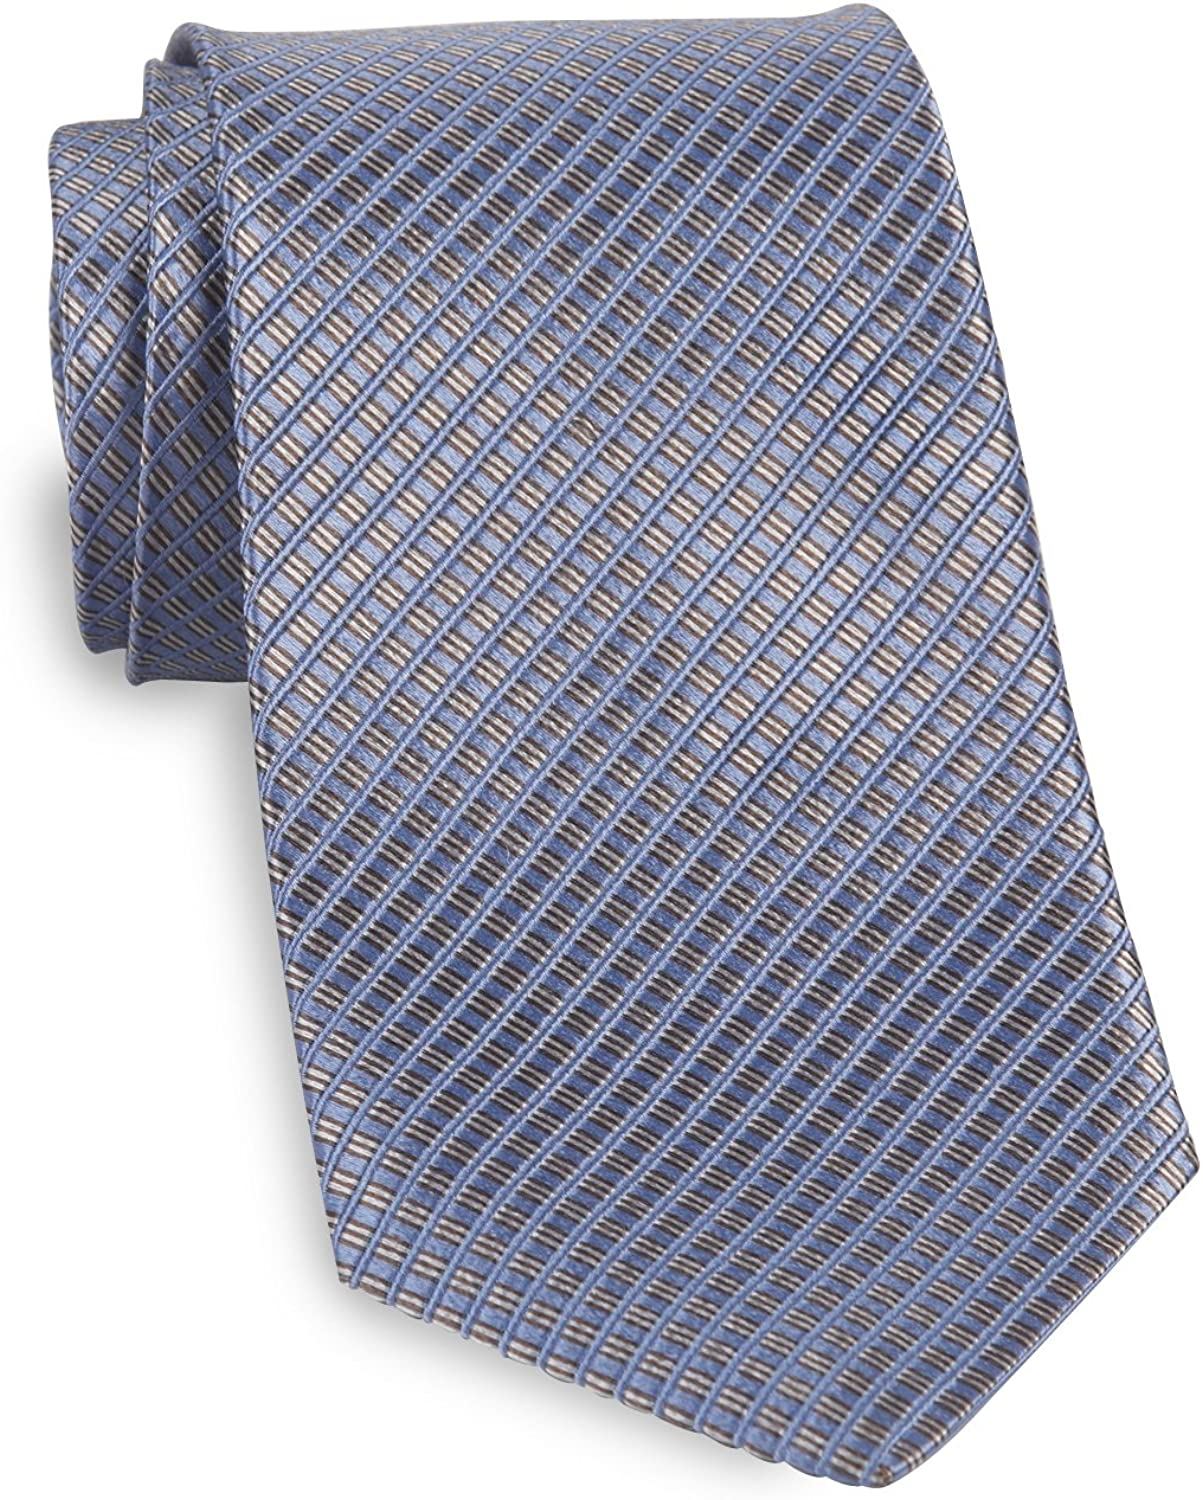 TODD SNYDER NEW YORK USA PLAID GRAY 3 INCH WIDTH 100% WOOL NECK TIE MENS NWT